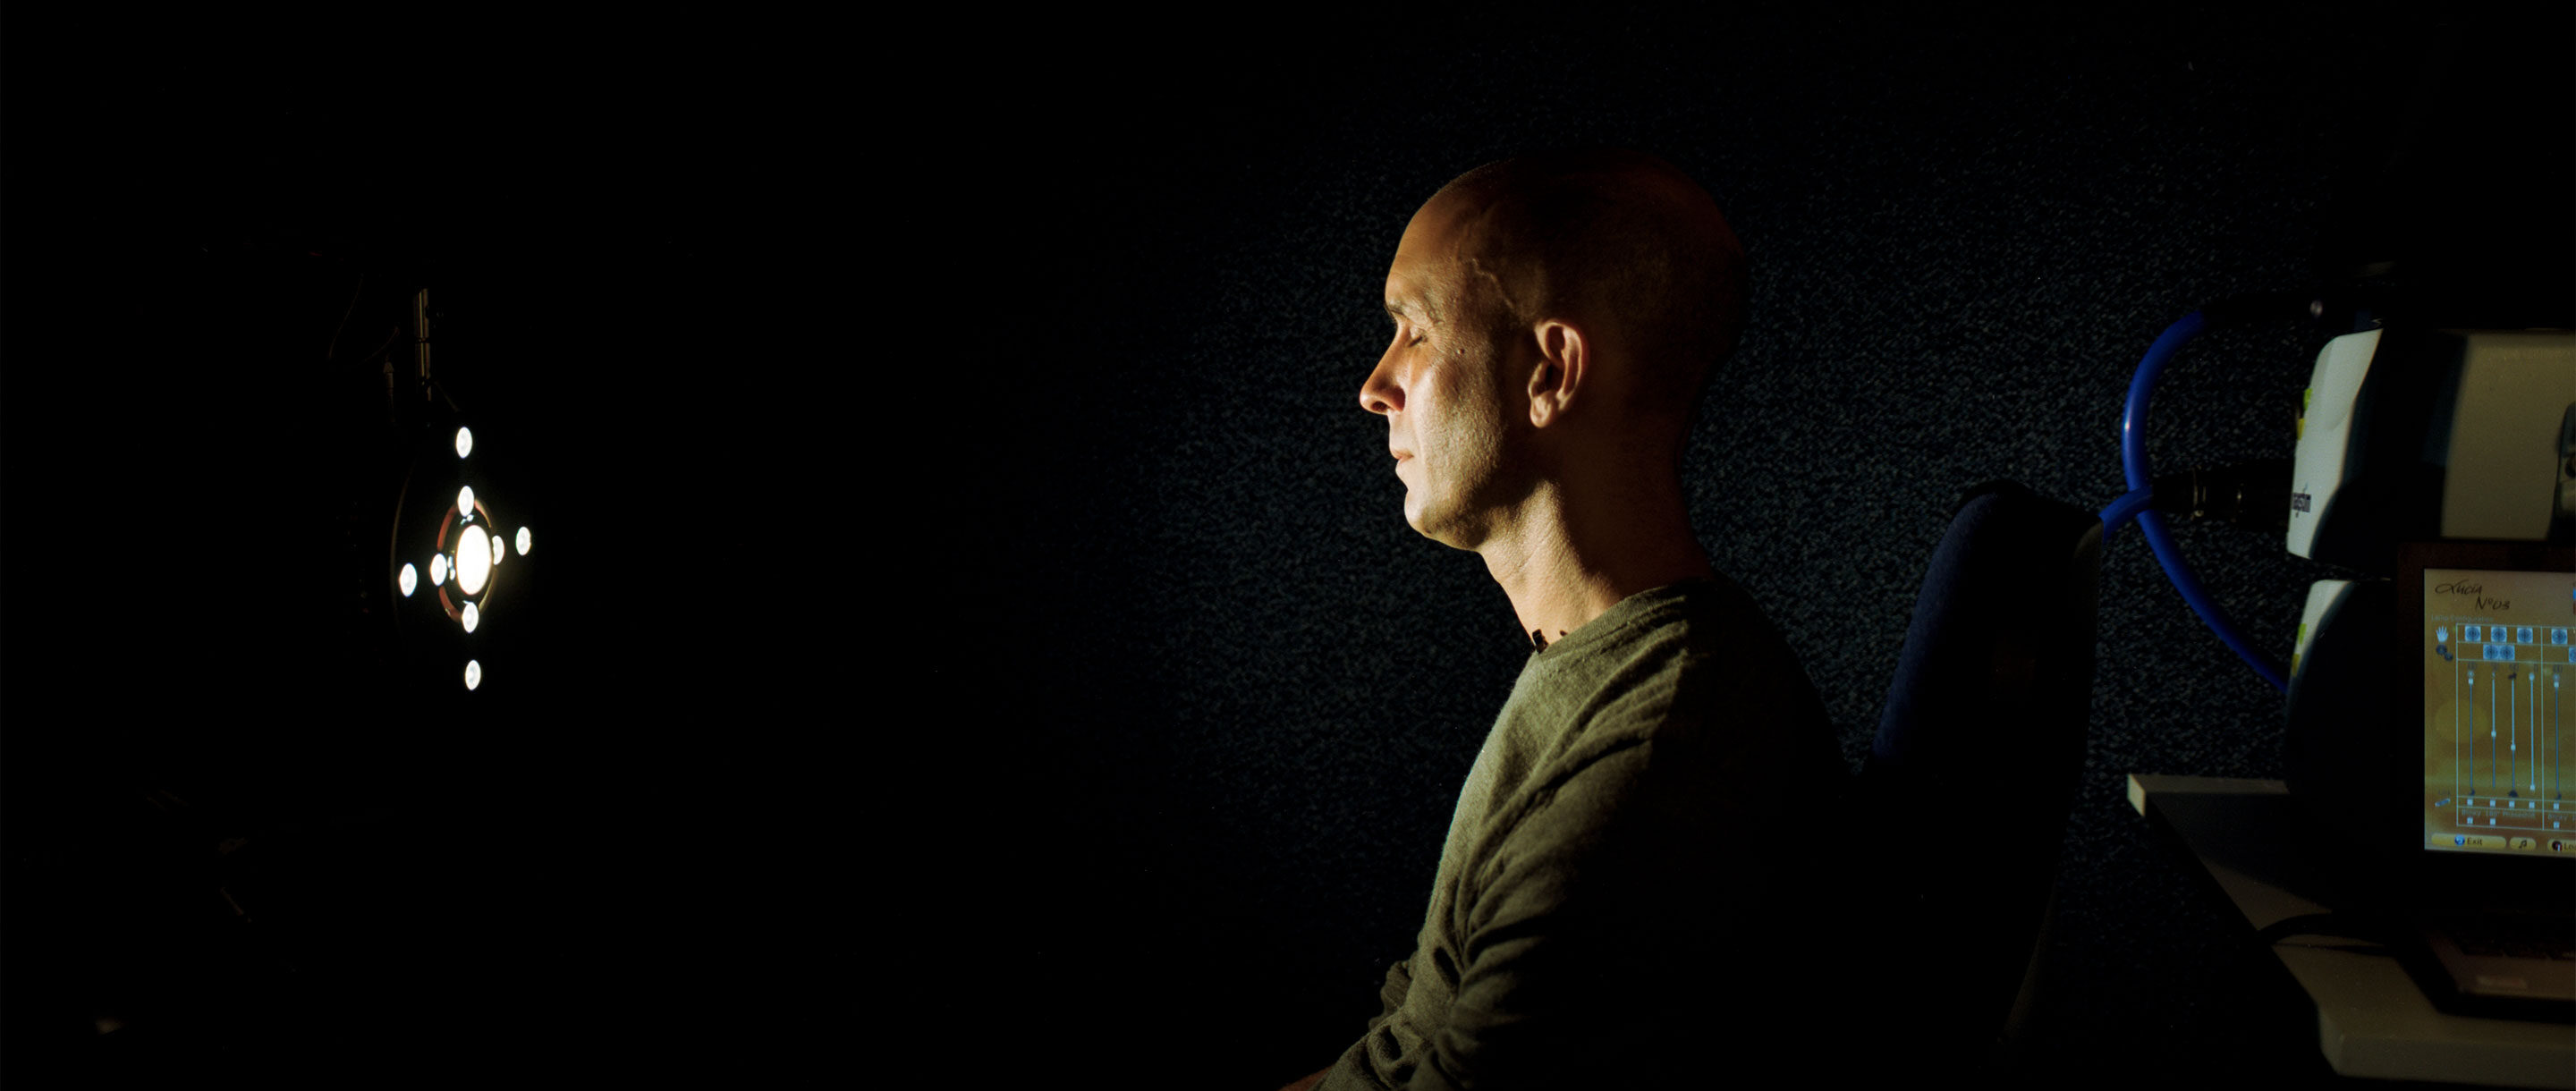 Neuroscientist Anil Seth in his darkened laboratory at the University of Sussex.